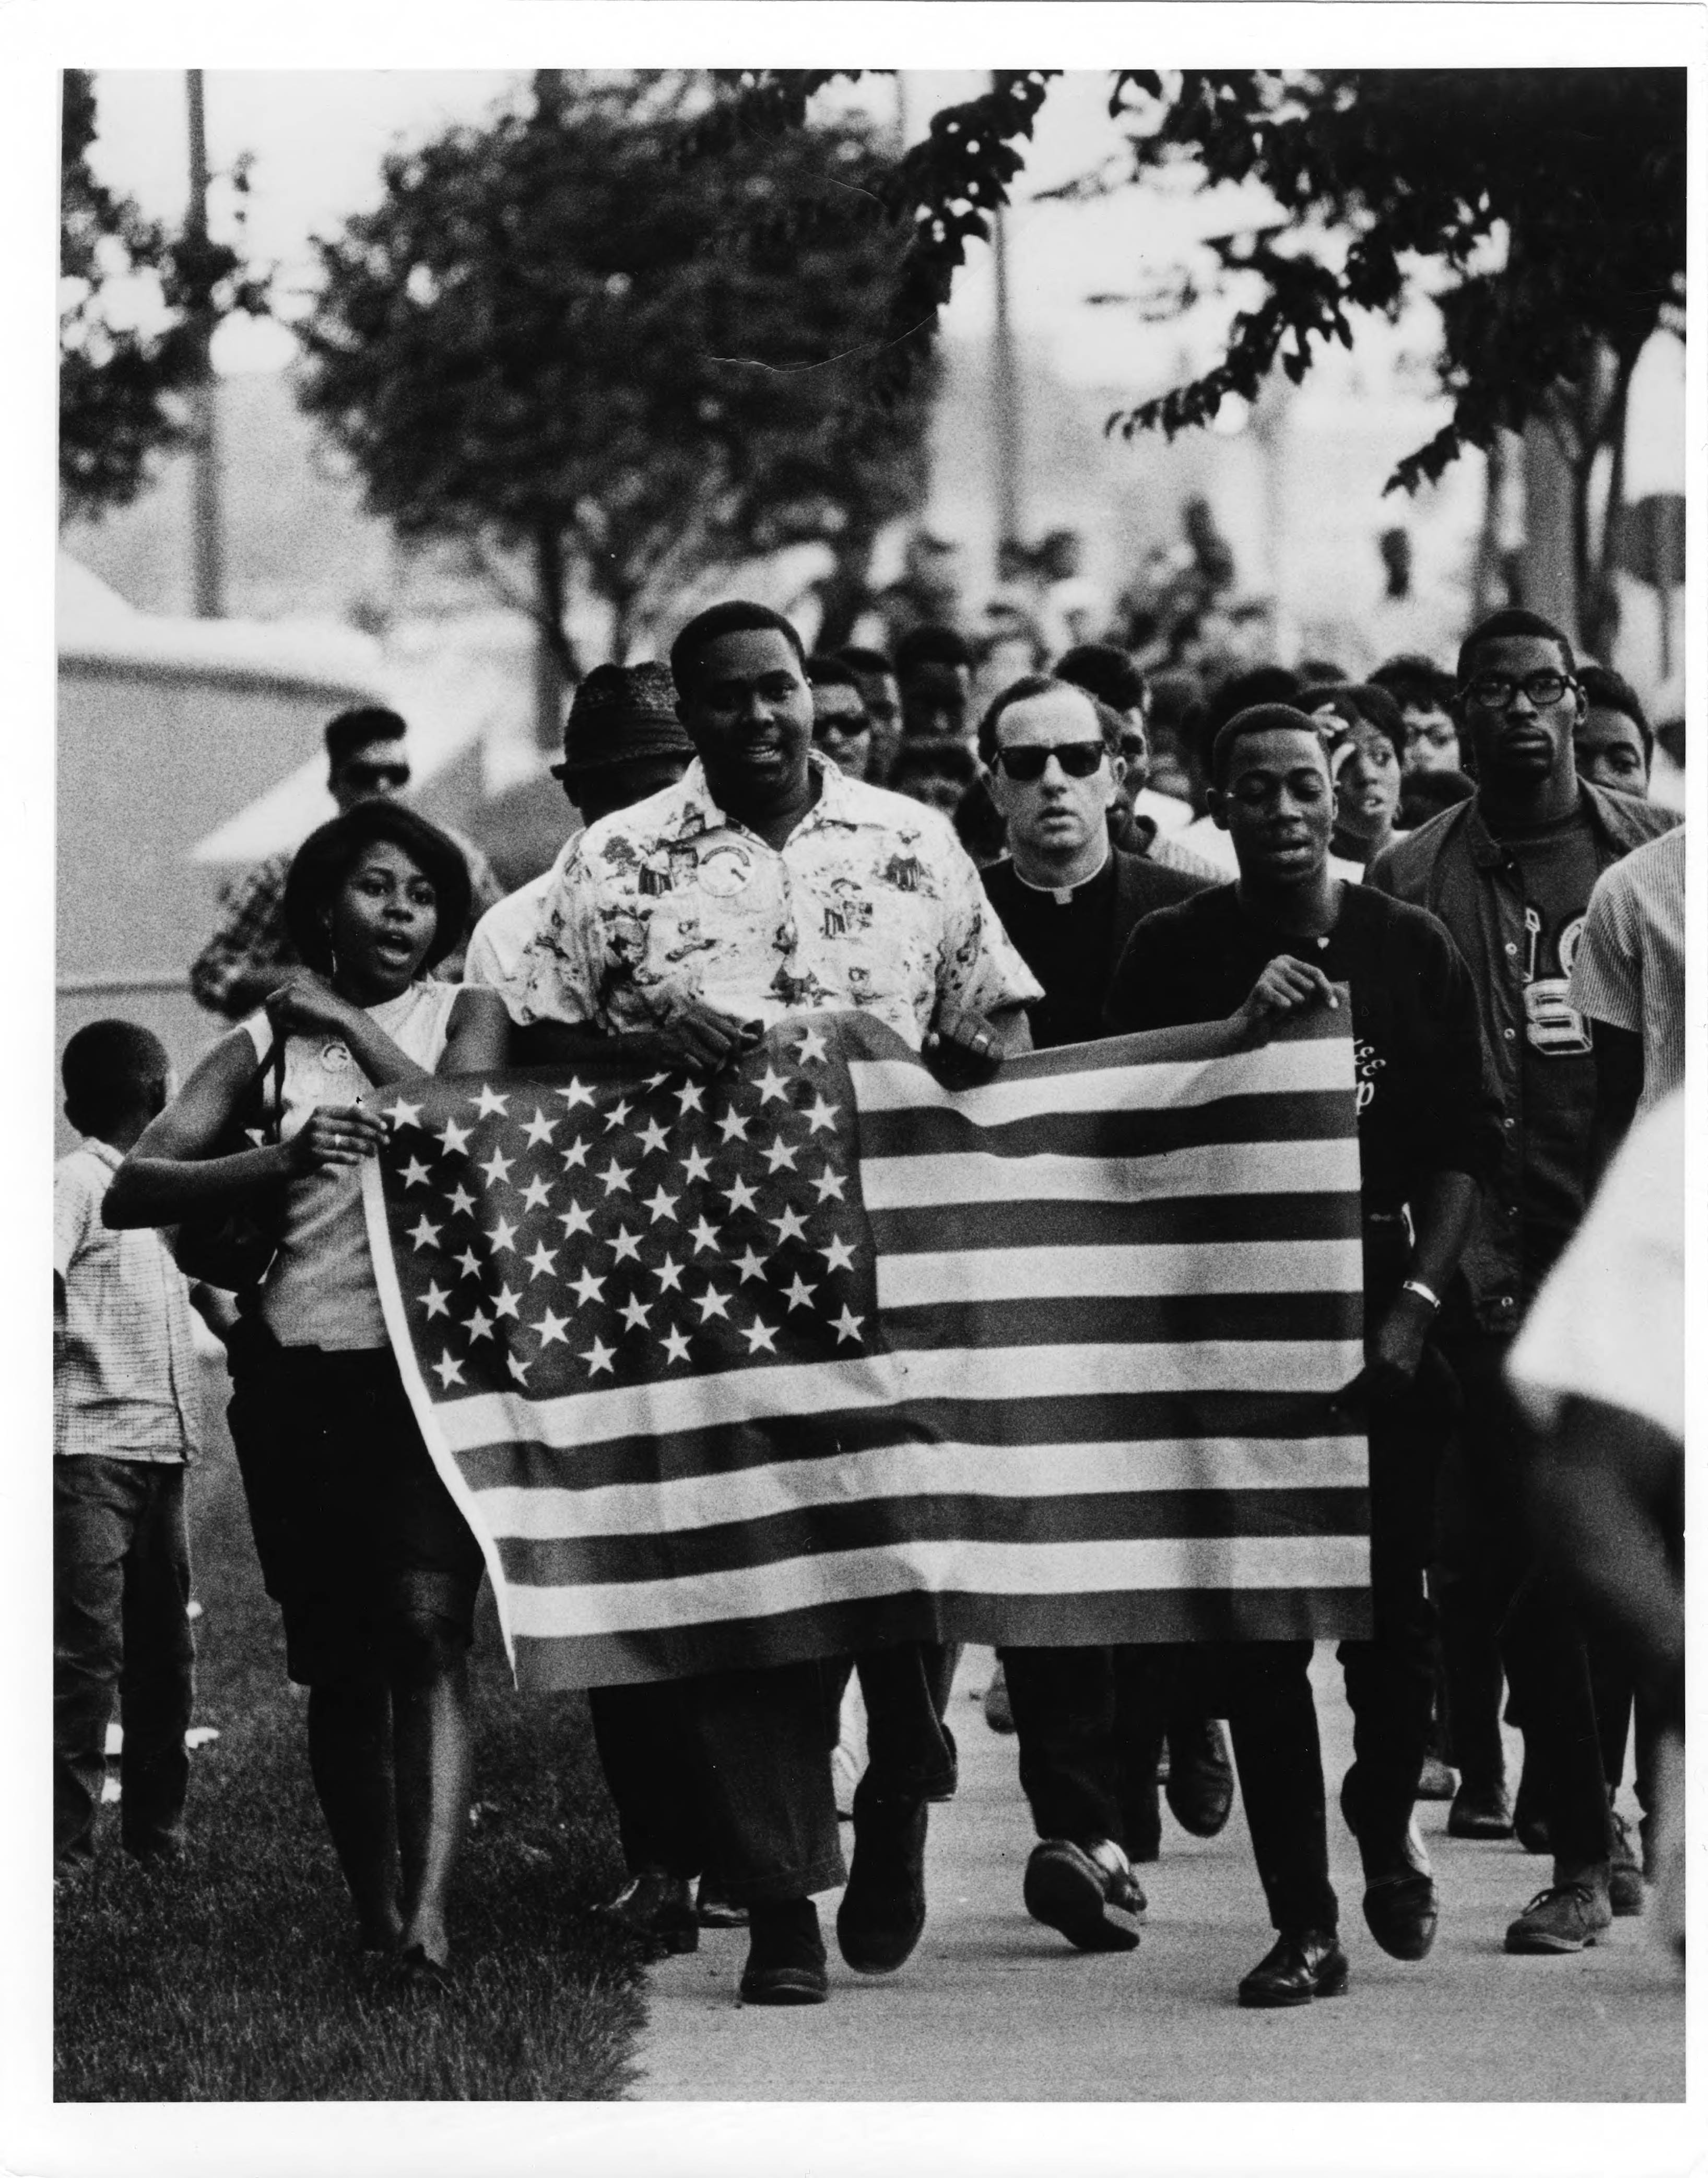 image of Eagles Club protest in the 1960s. Civil rights marchers fill a street and hold an American Flag